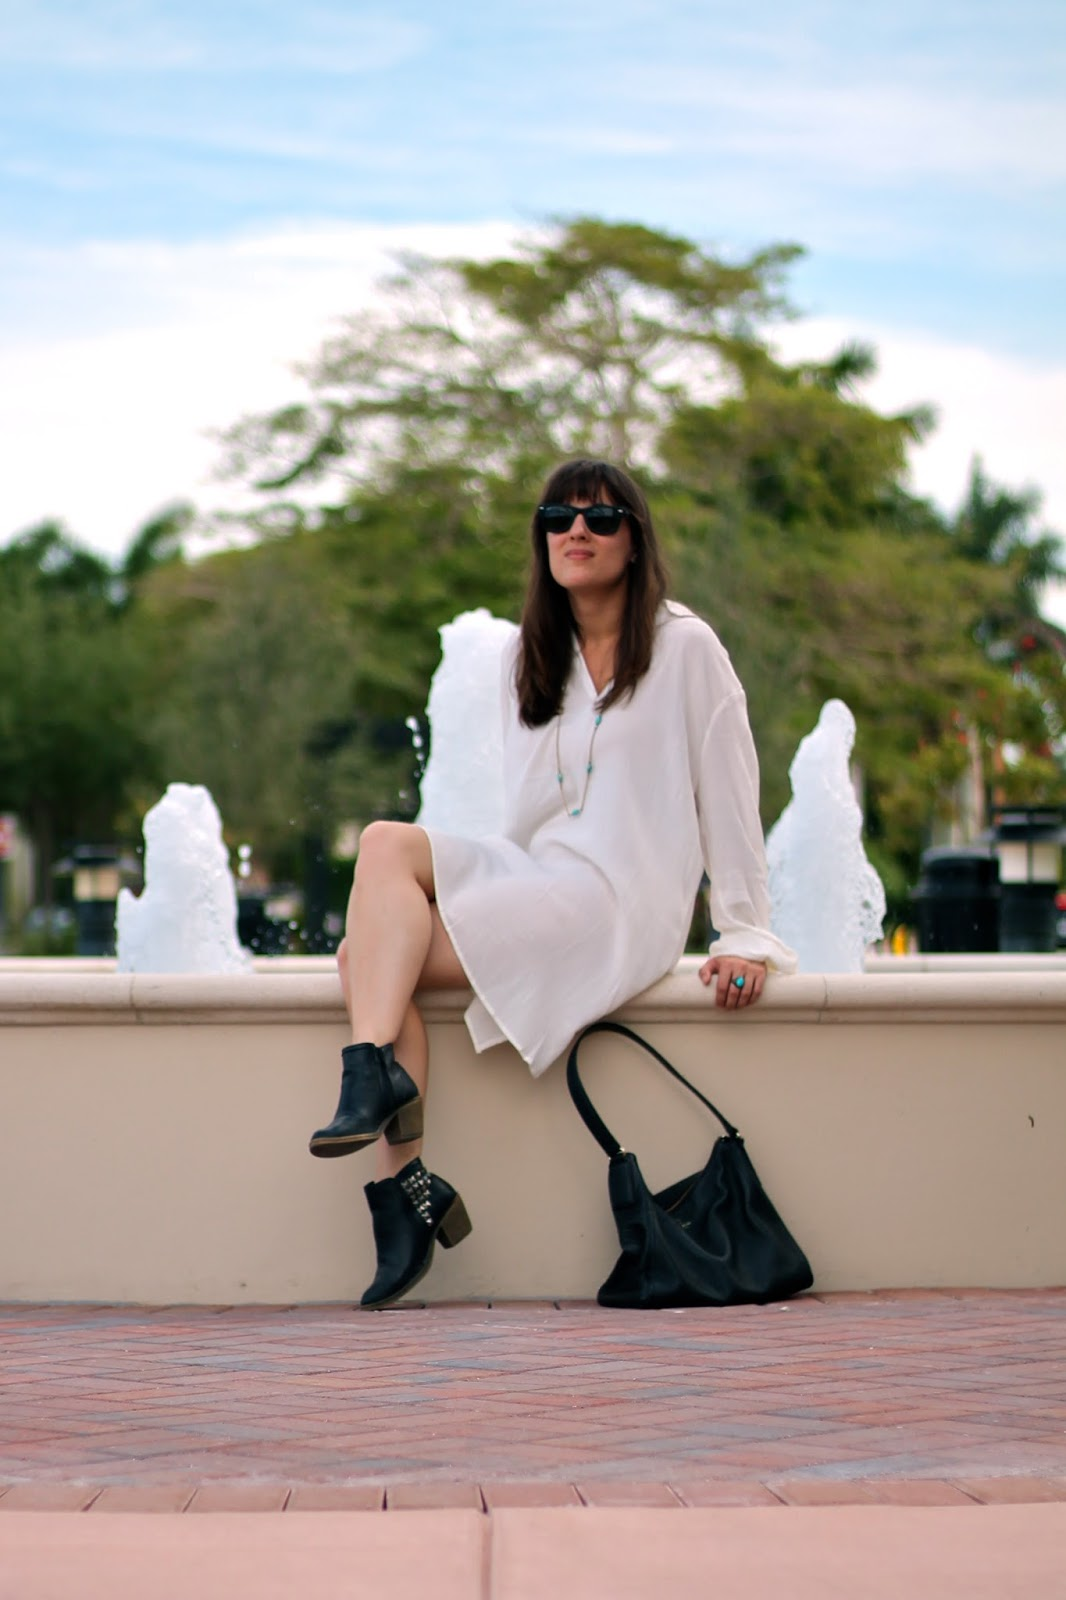 Tobi, Shop Tobi, fashion blogger, summer whites, summer style, style blogger, Miami fashion blogger, South Florida blogger, Miami fashion, Miami style, outfit ideas